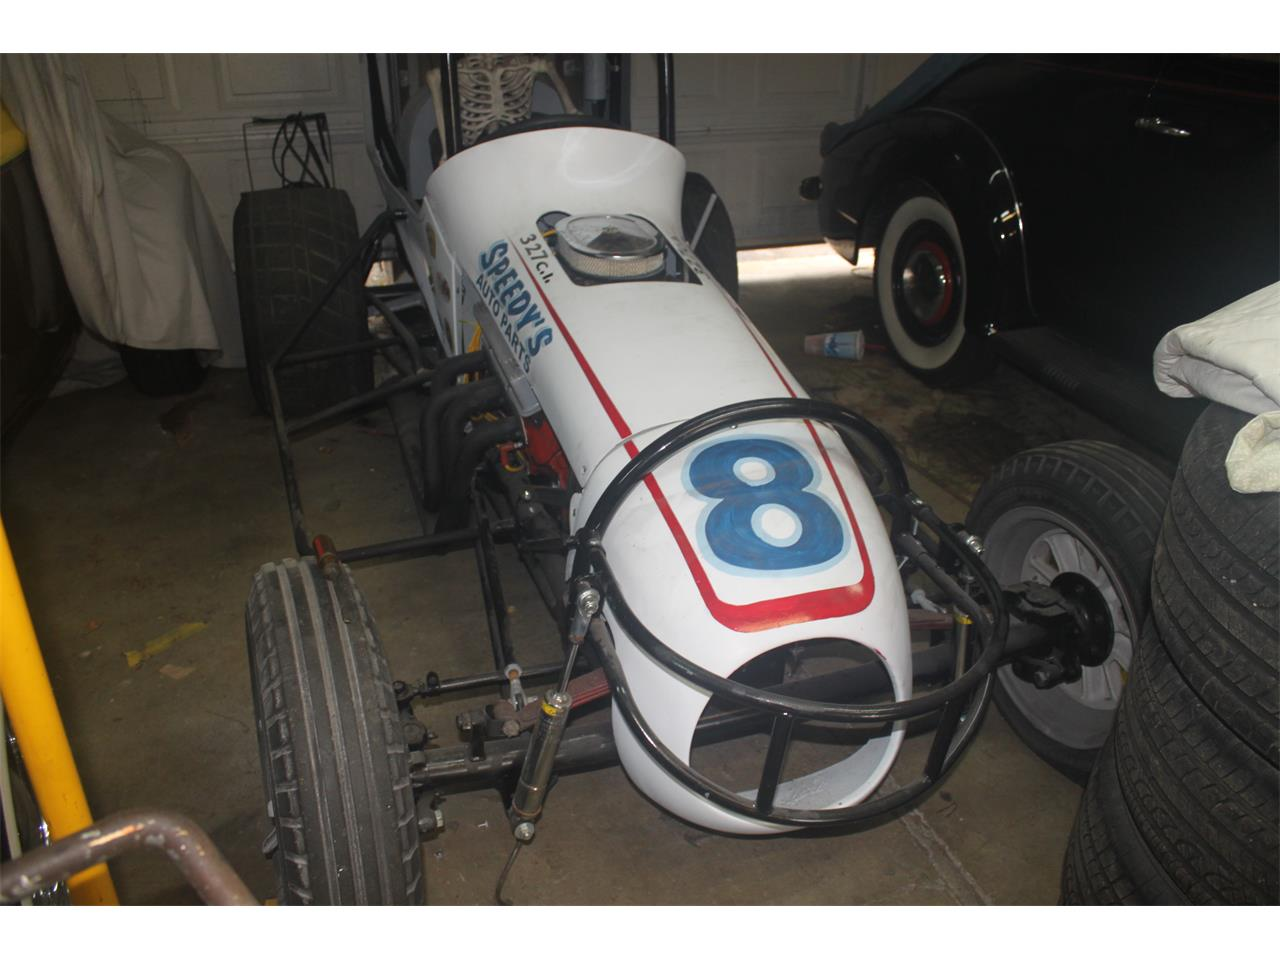 For Sale: 1962 Sprint Race Car in Carnation, Washington